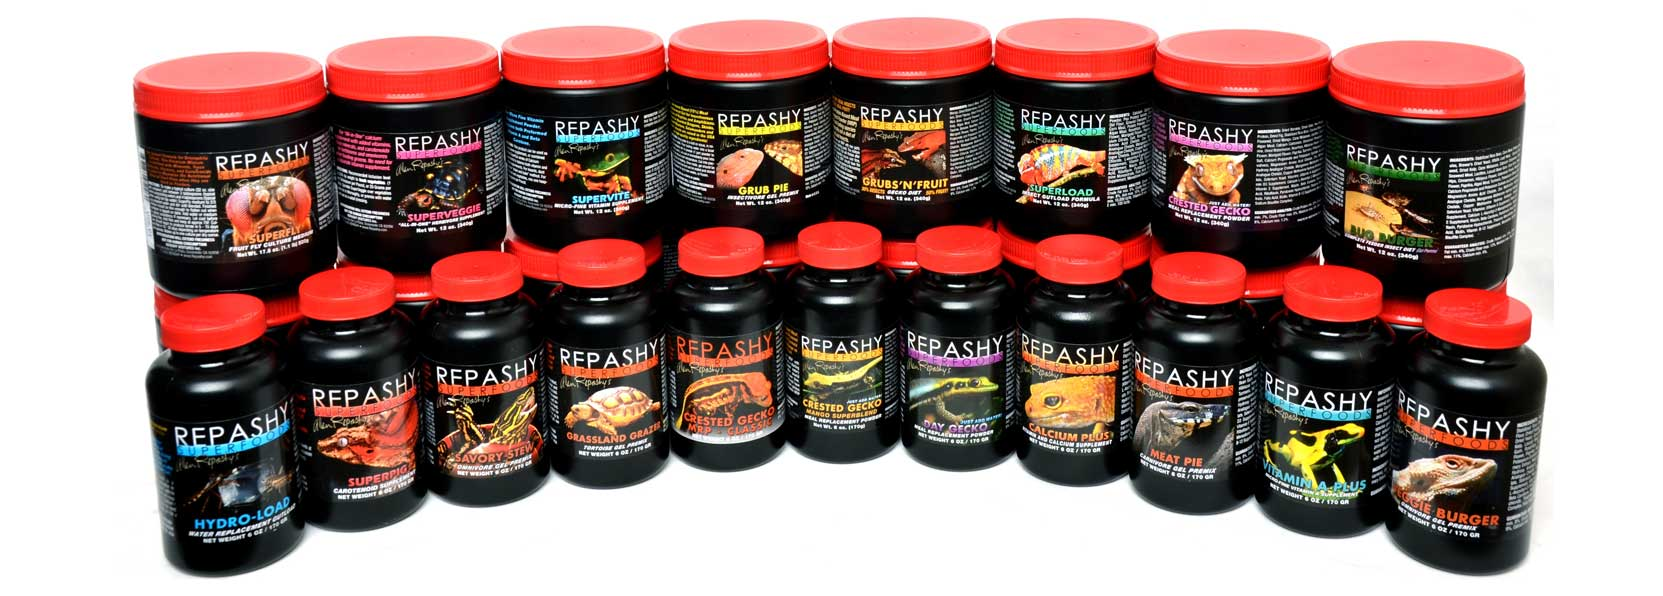 all-reptile-products-header-21